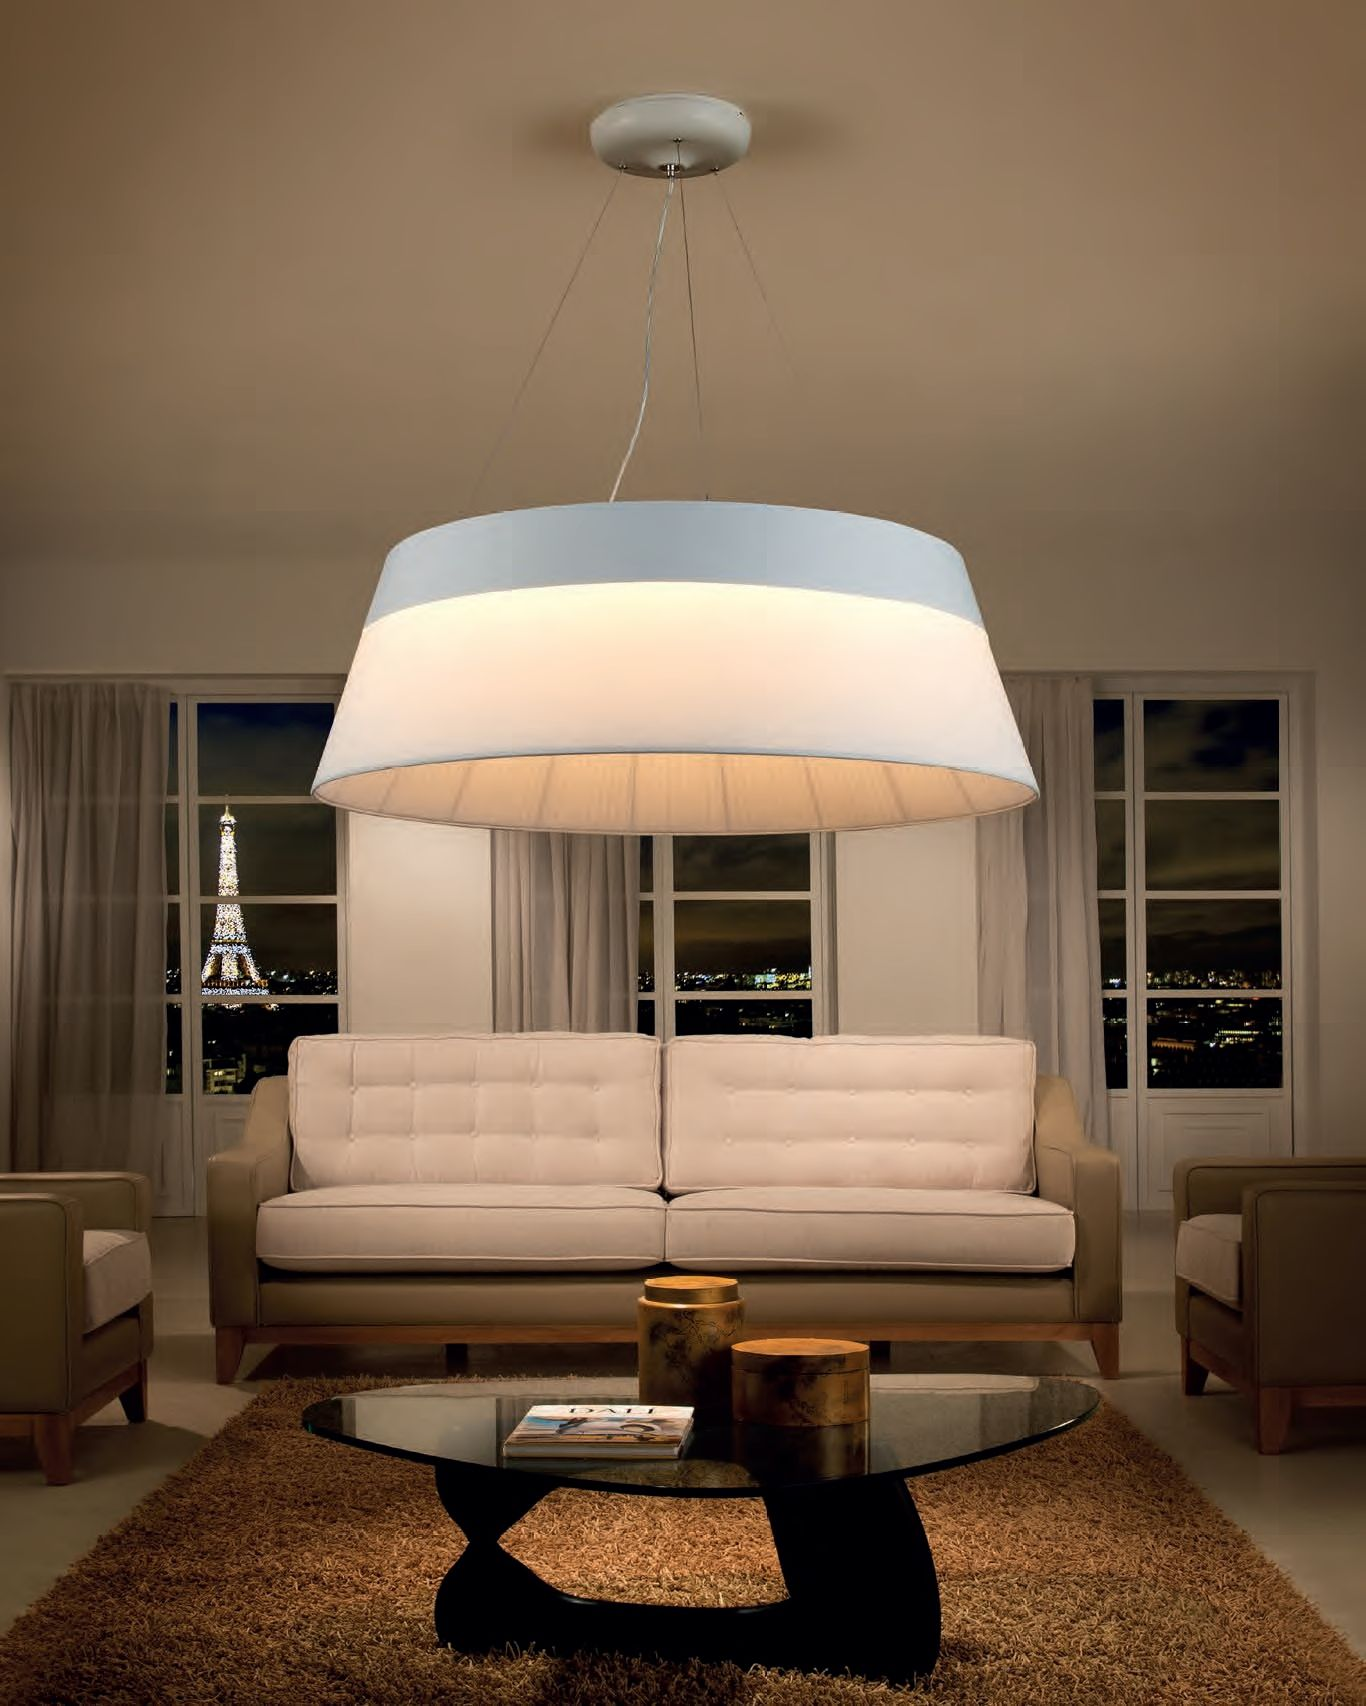 Extra Large Modern feature light for Atrium entrance hallway or